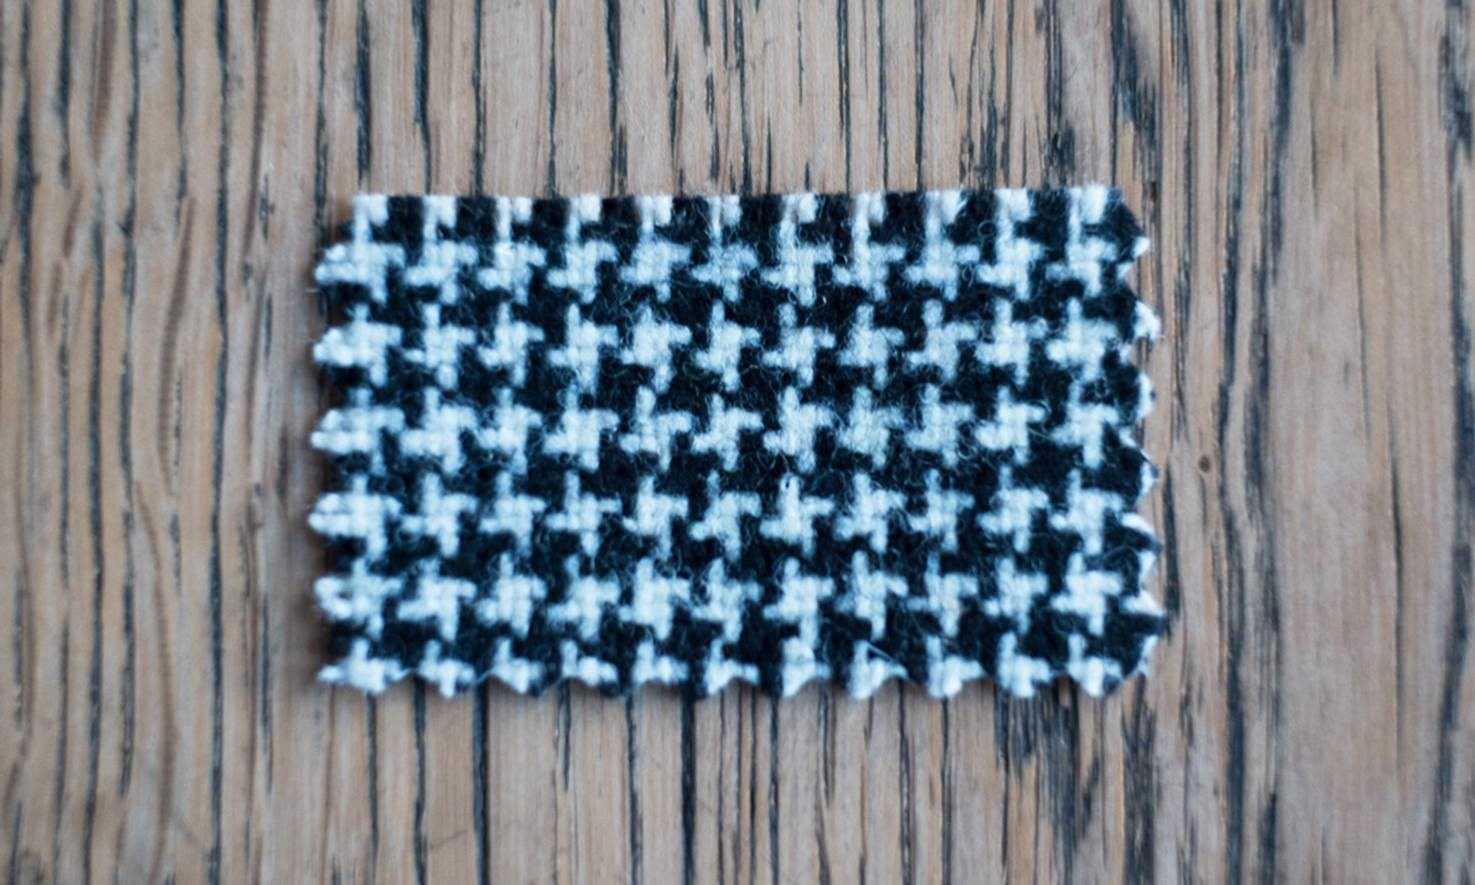 Houndstooth fabric pattern